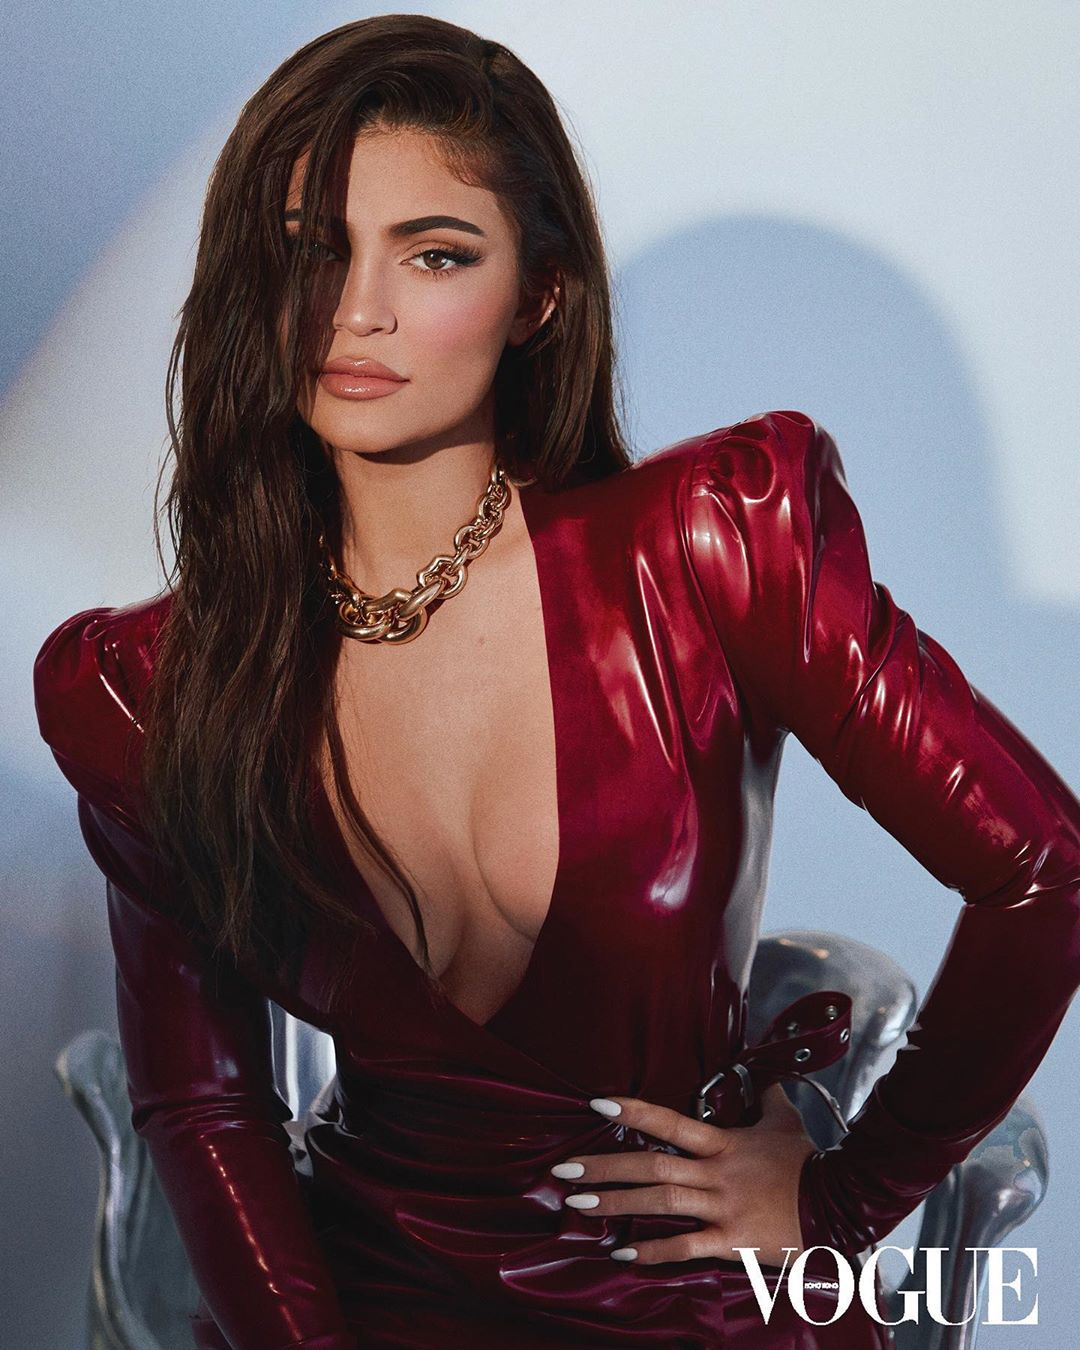 Kylie Jenner is a Vogue cover girl again as she smolders in plunging red latex gown and is praised for her 'strength and determination' in Hong Kong issue